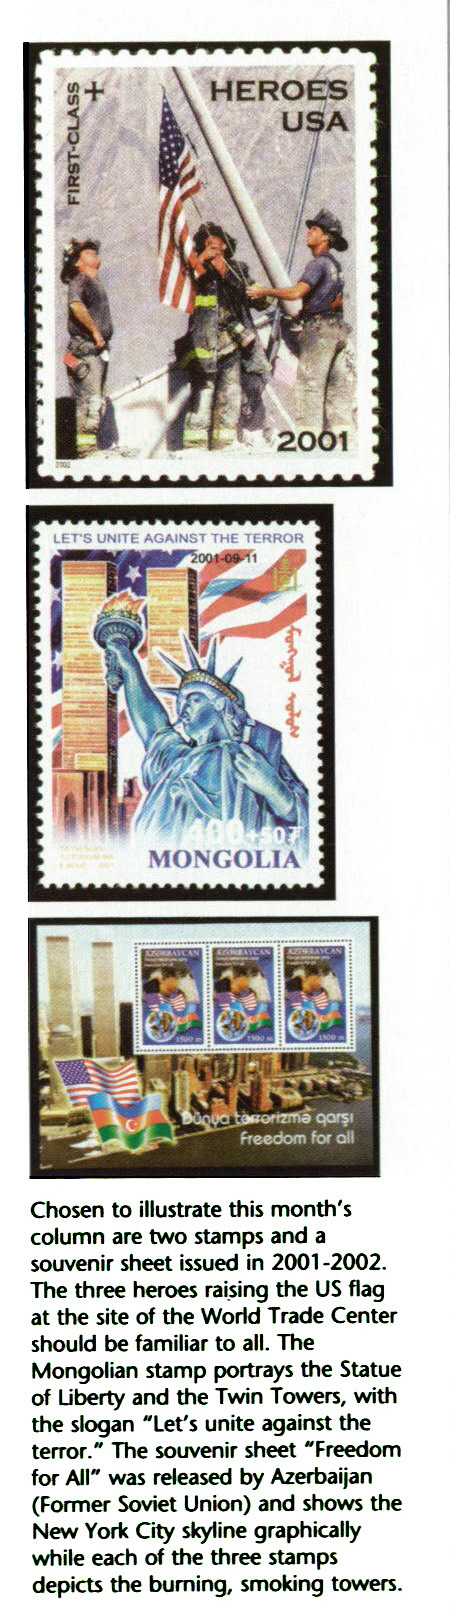 """Chosen to illustrate this month's column are two stamps and a souvenir sheet issued in 2001 -2002. The three heroes raising the US flag at the site of the World Trade Center should be familiar to all. The Mongolian stamp portrays the Statue of Liberty and the Twin Towers, with the slogan """"Lef s unite against the terror."""" The souvenir sheet """"Freedom for All"""" was released by Azerbaijan (Former Soviet Union) and shows the New York City skyline graphically while each of the three stamps depicts the burning, smoking towers."""